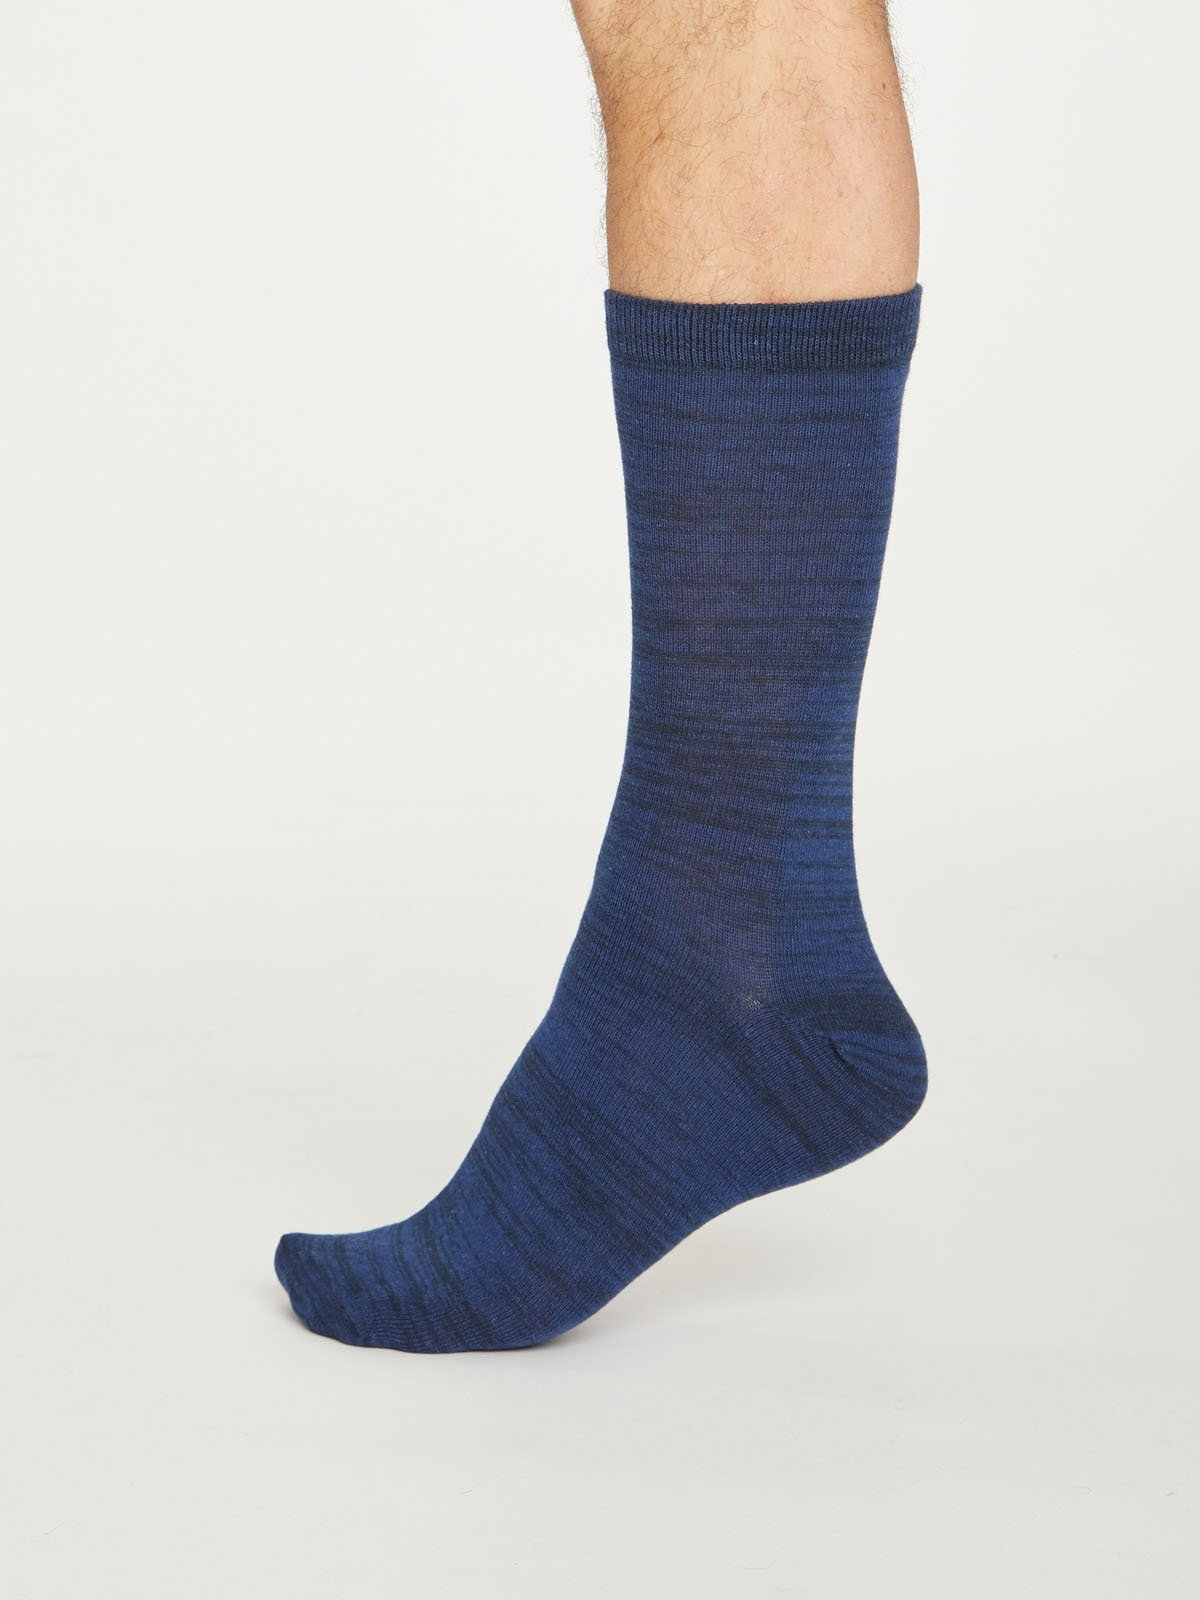 Lisketh Organic Cotton Socks in Midnight Navy by Thought, Size 7-11